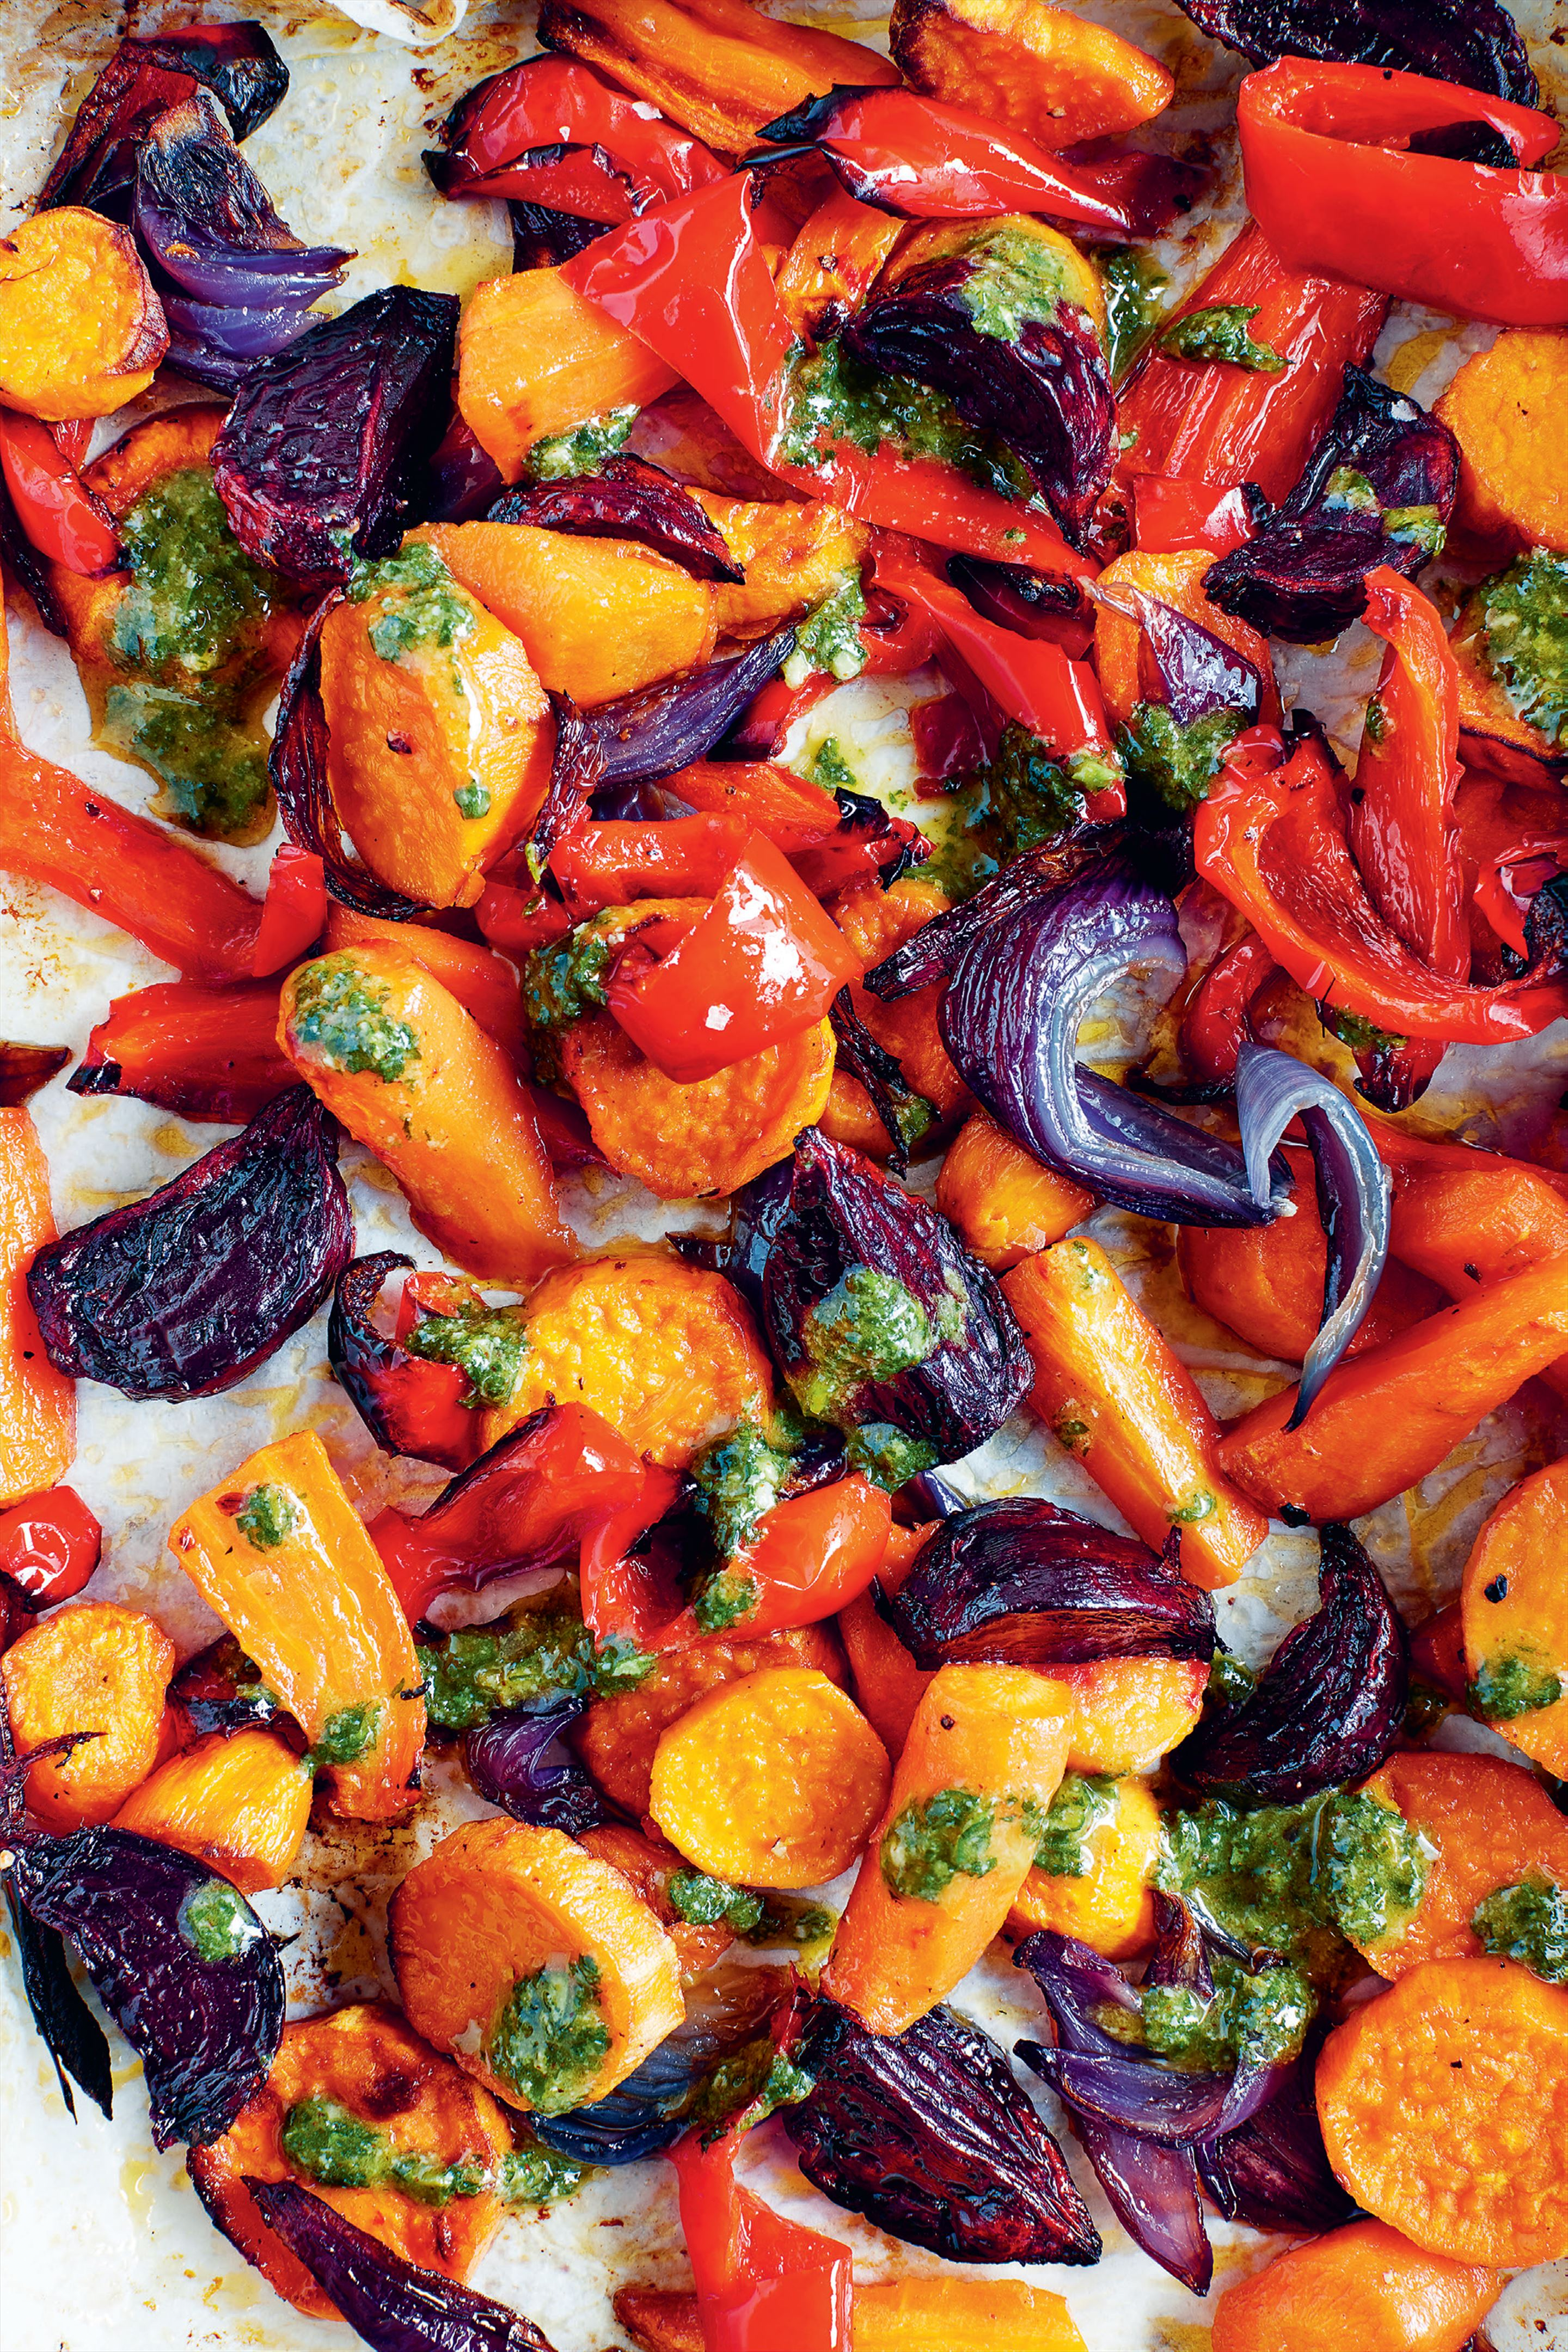 Roasted veg with nut butter pesto